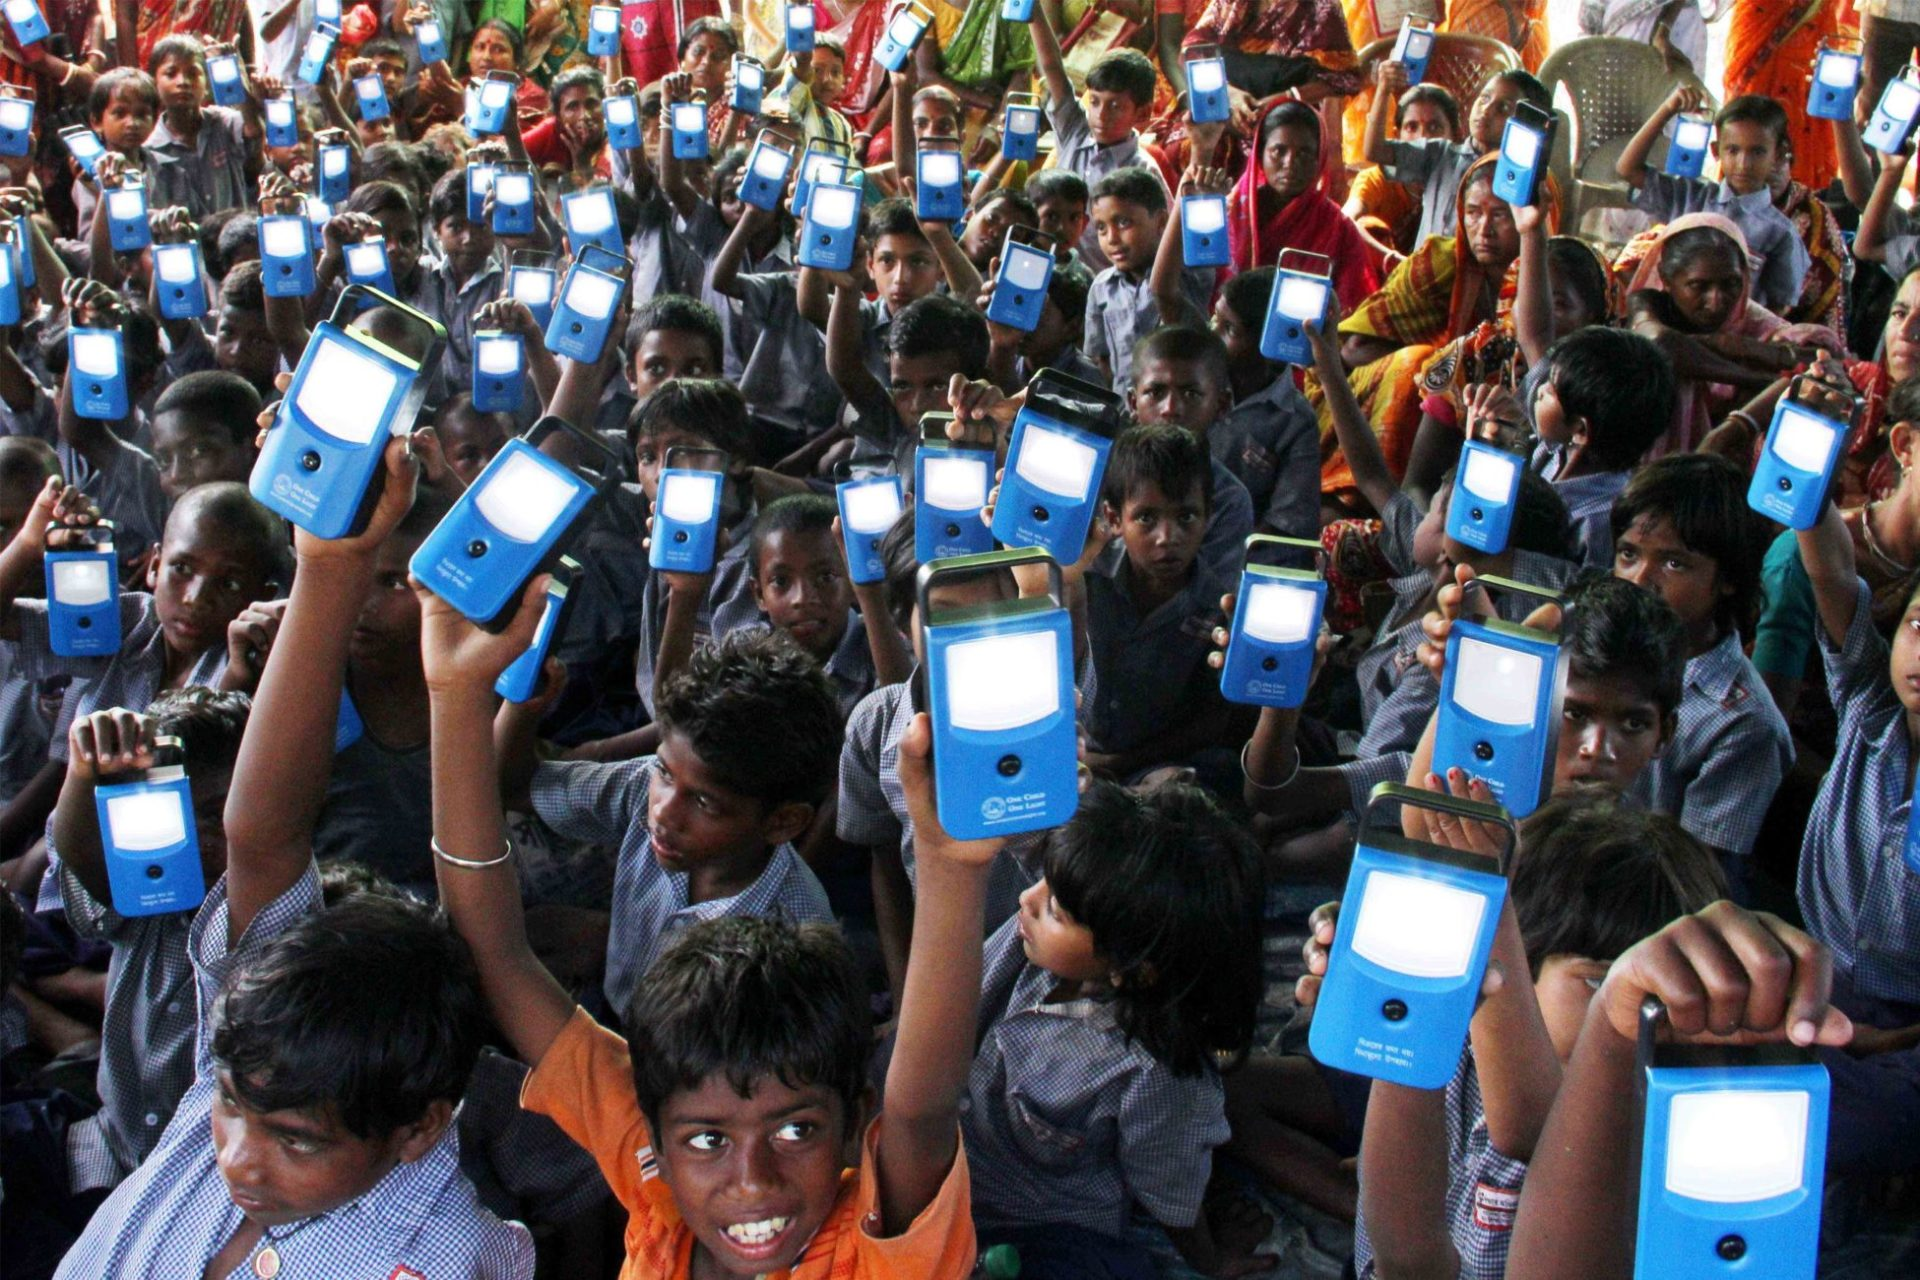 Young children raise their blue digital devices toward the sky.